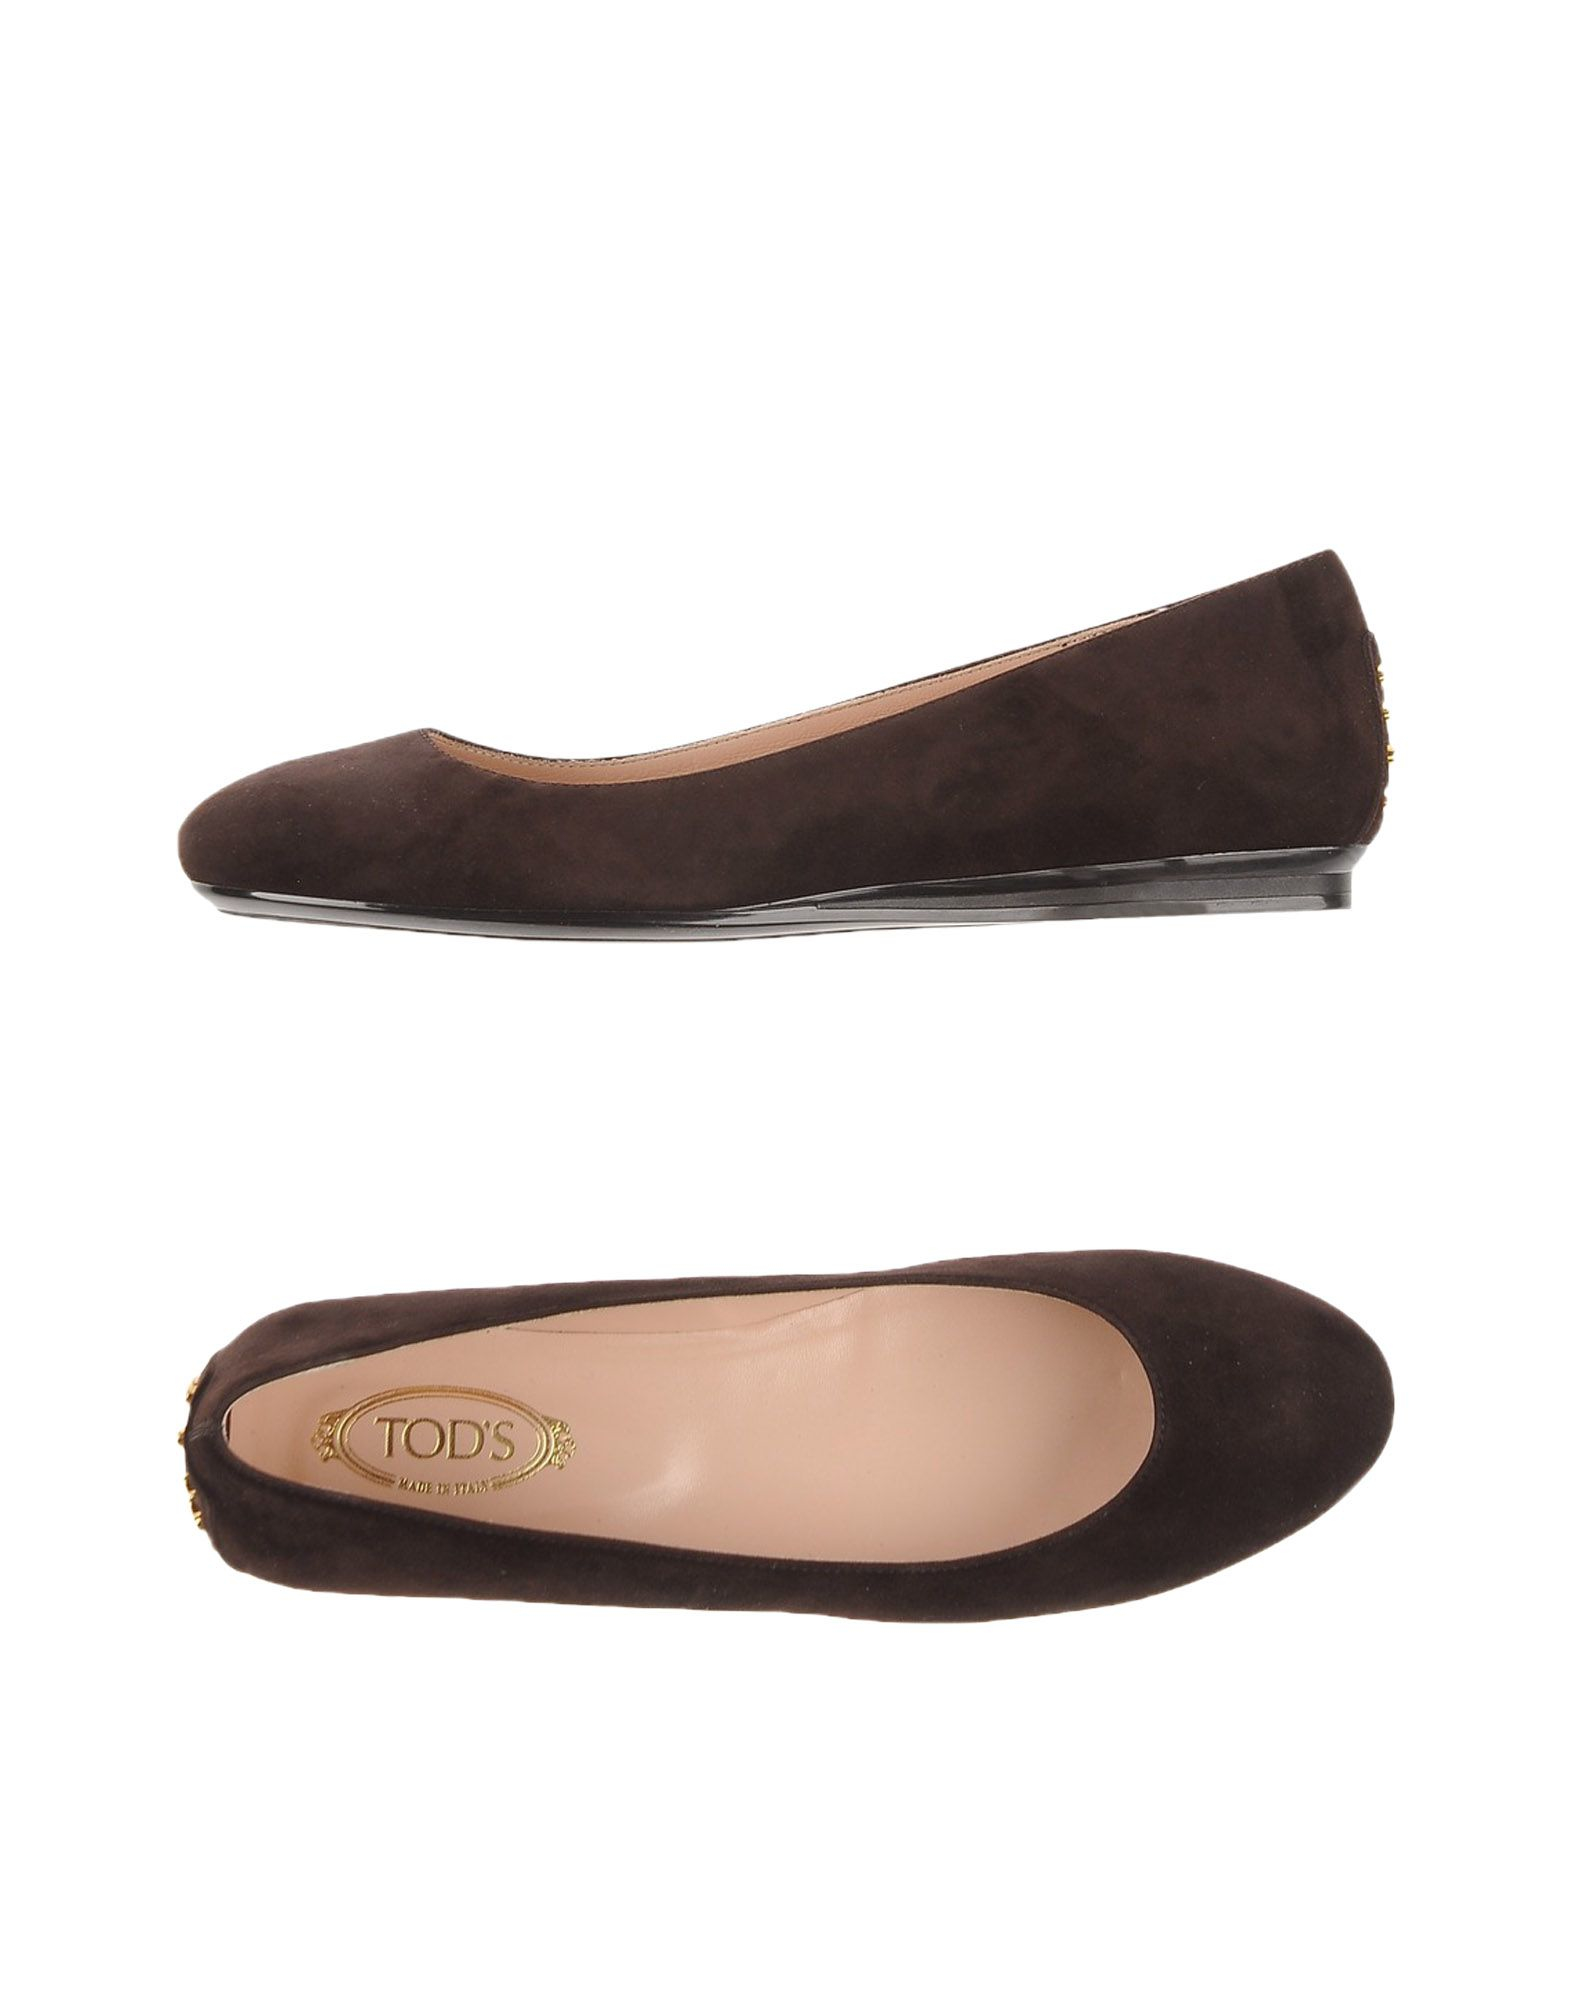 Brown Flats Shoes For Men On Suits